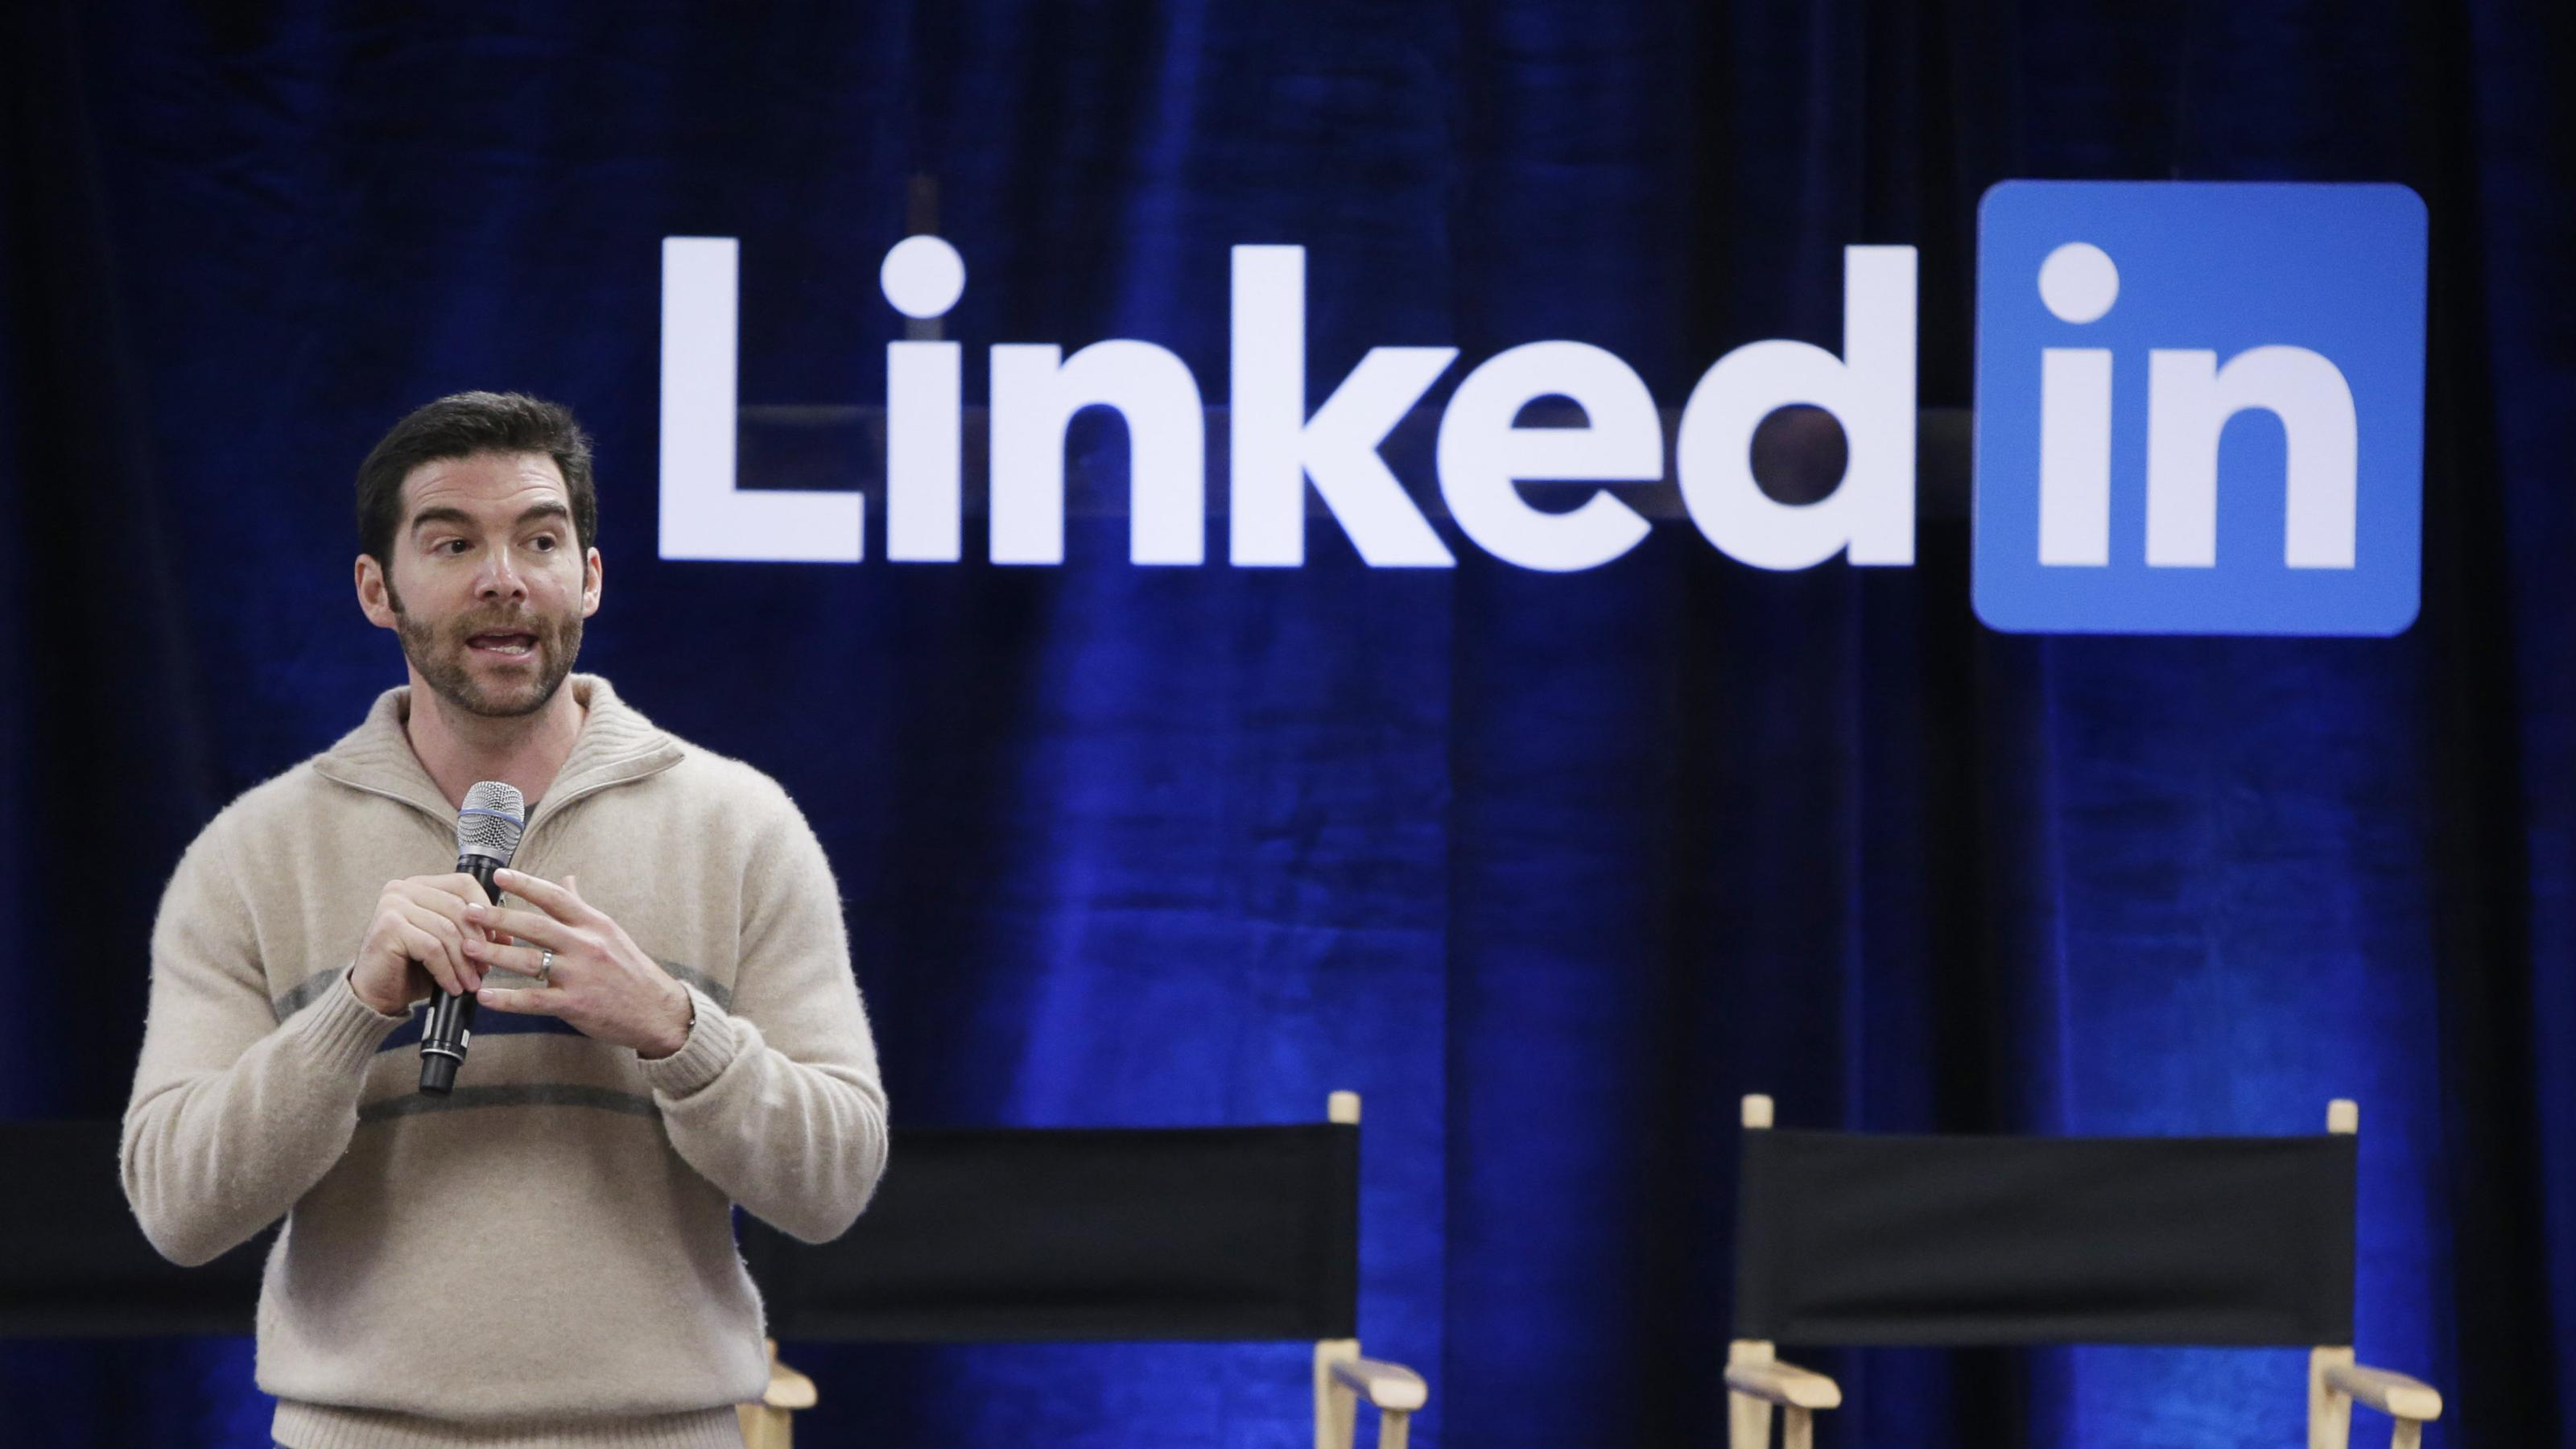 LinkedIn CEO Jeff Weiner: The main US skills gap is not coding